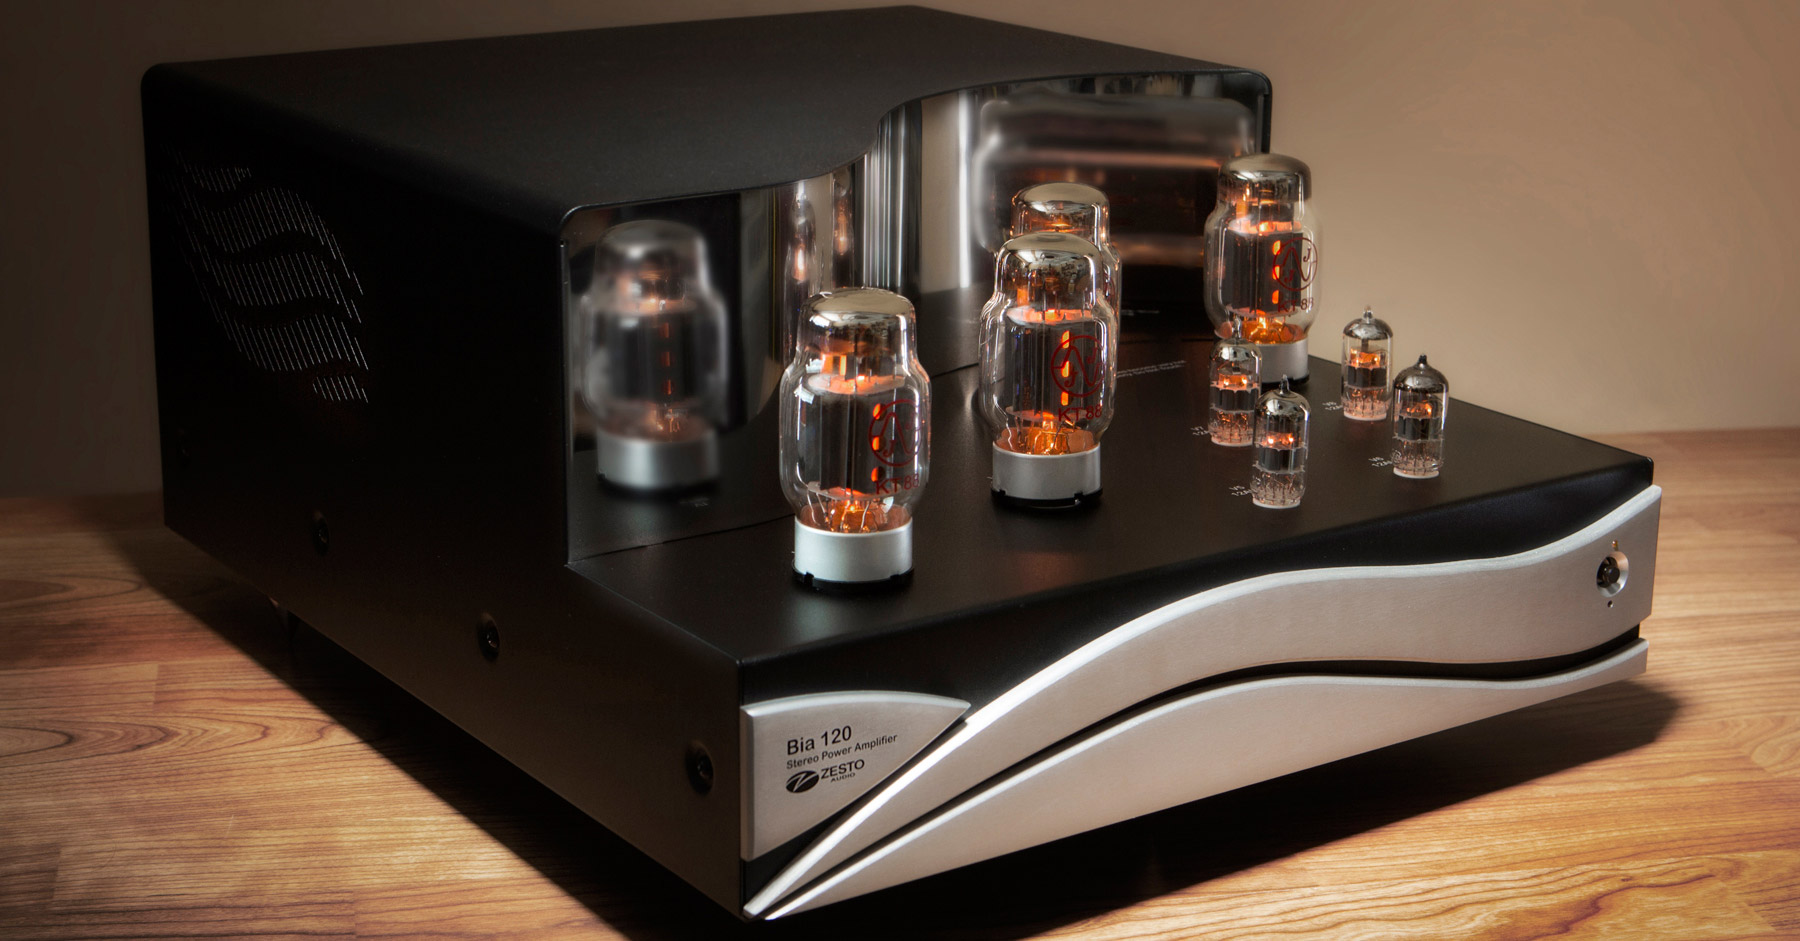 Bia 120 Stereo Power Amp Vacuum Tube Kt88 Class A 60 Watts Chanel Amplifier With Output More